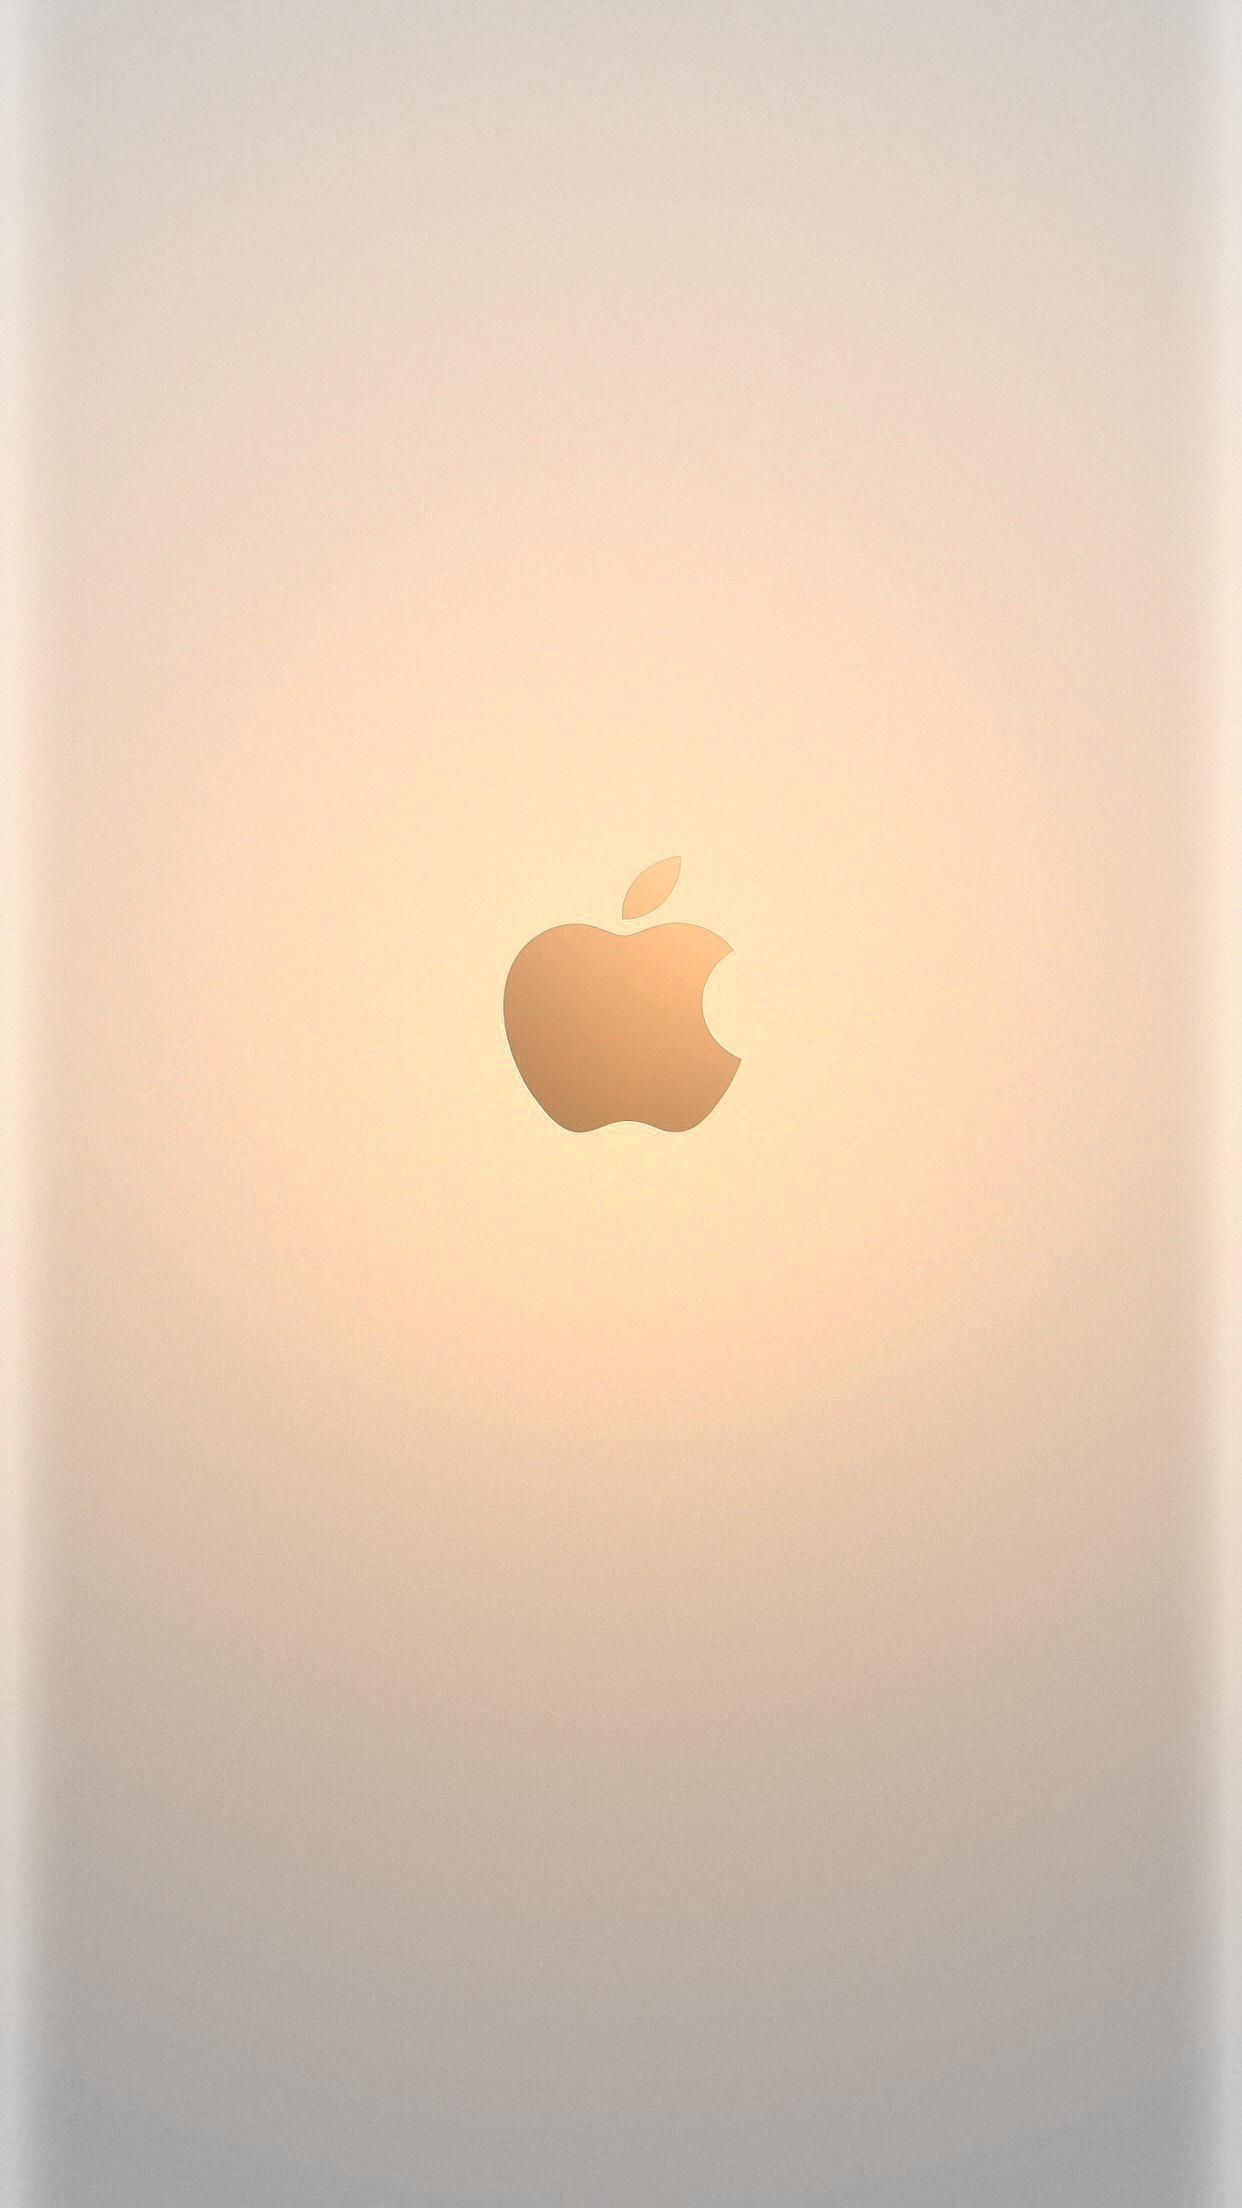 10 New Iphone 7 Rose Gold Wallpaper FULL HD 1920×1080 For ...